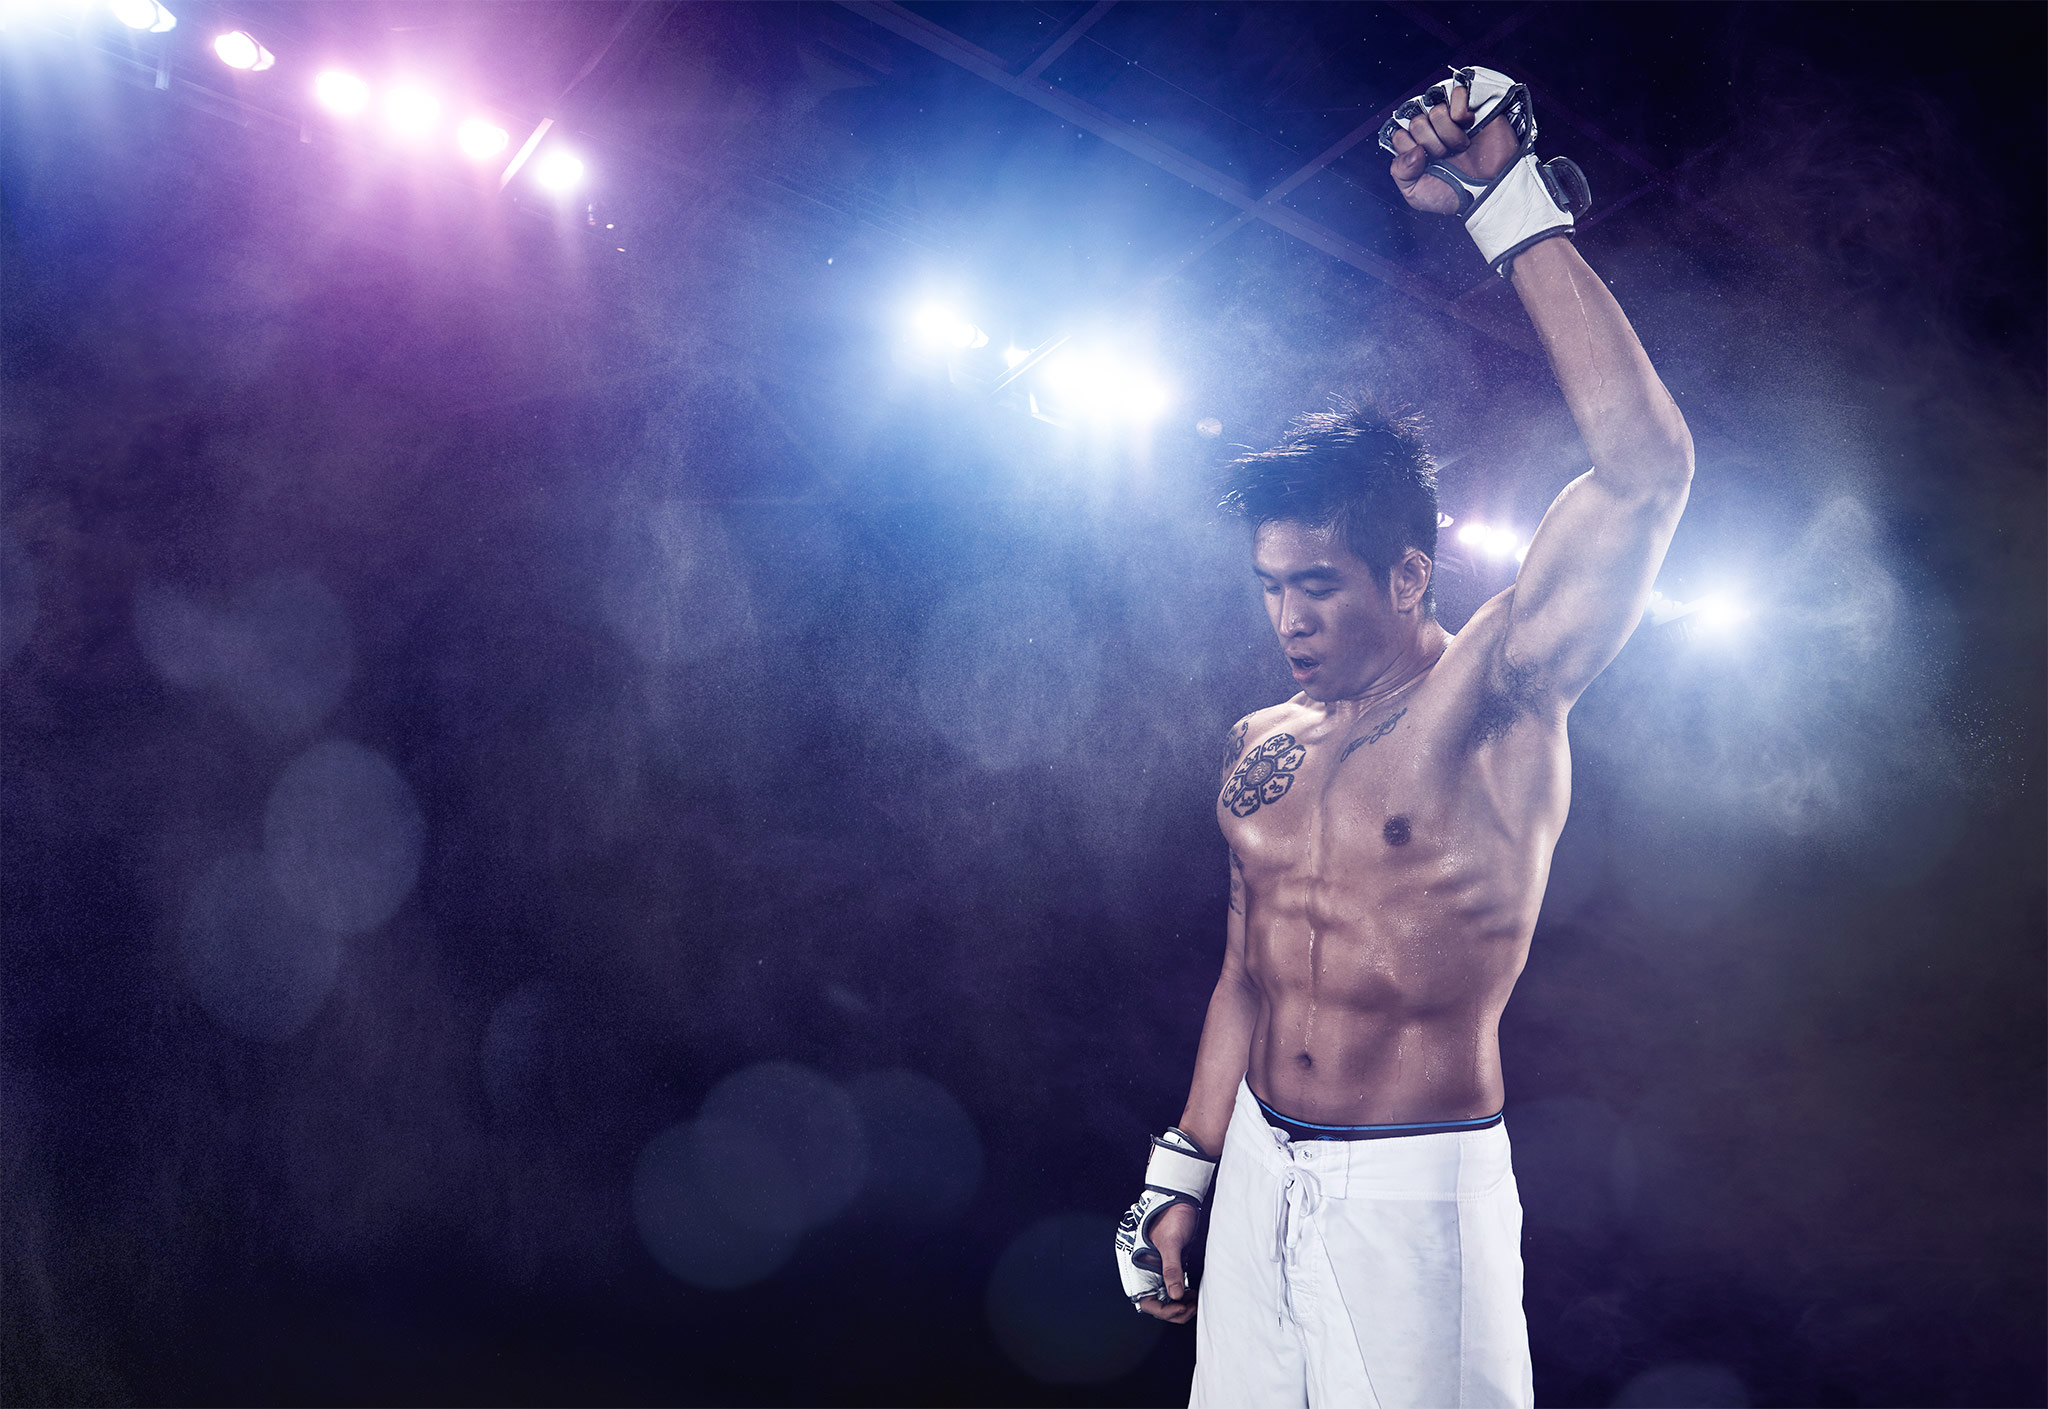 MMA Athlete Raises Hand in Victory | Zach Ancell Photography